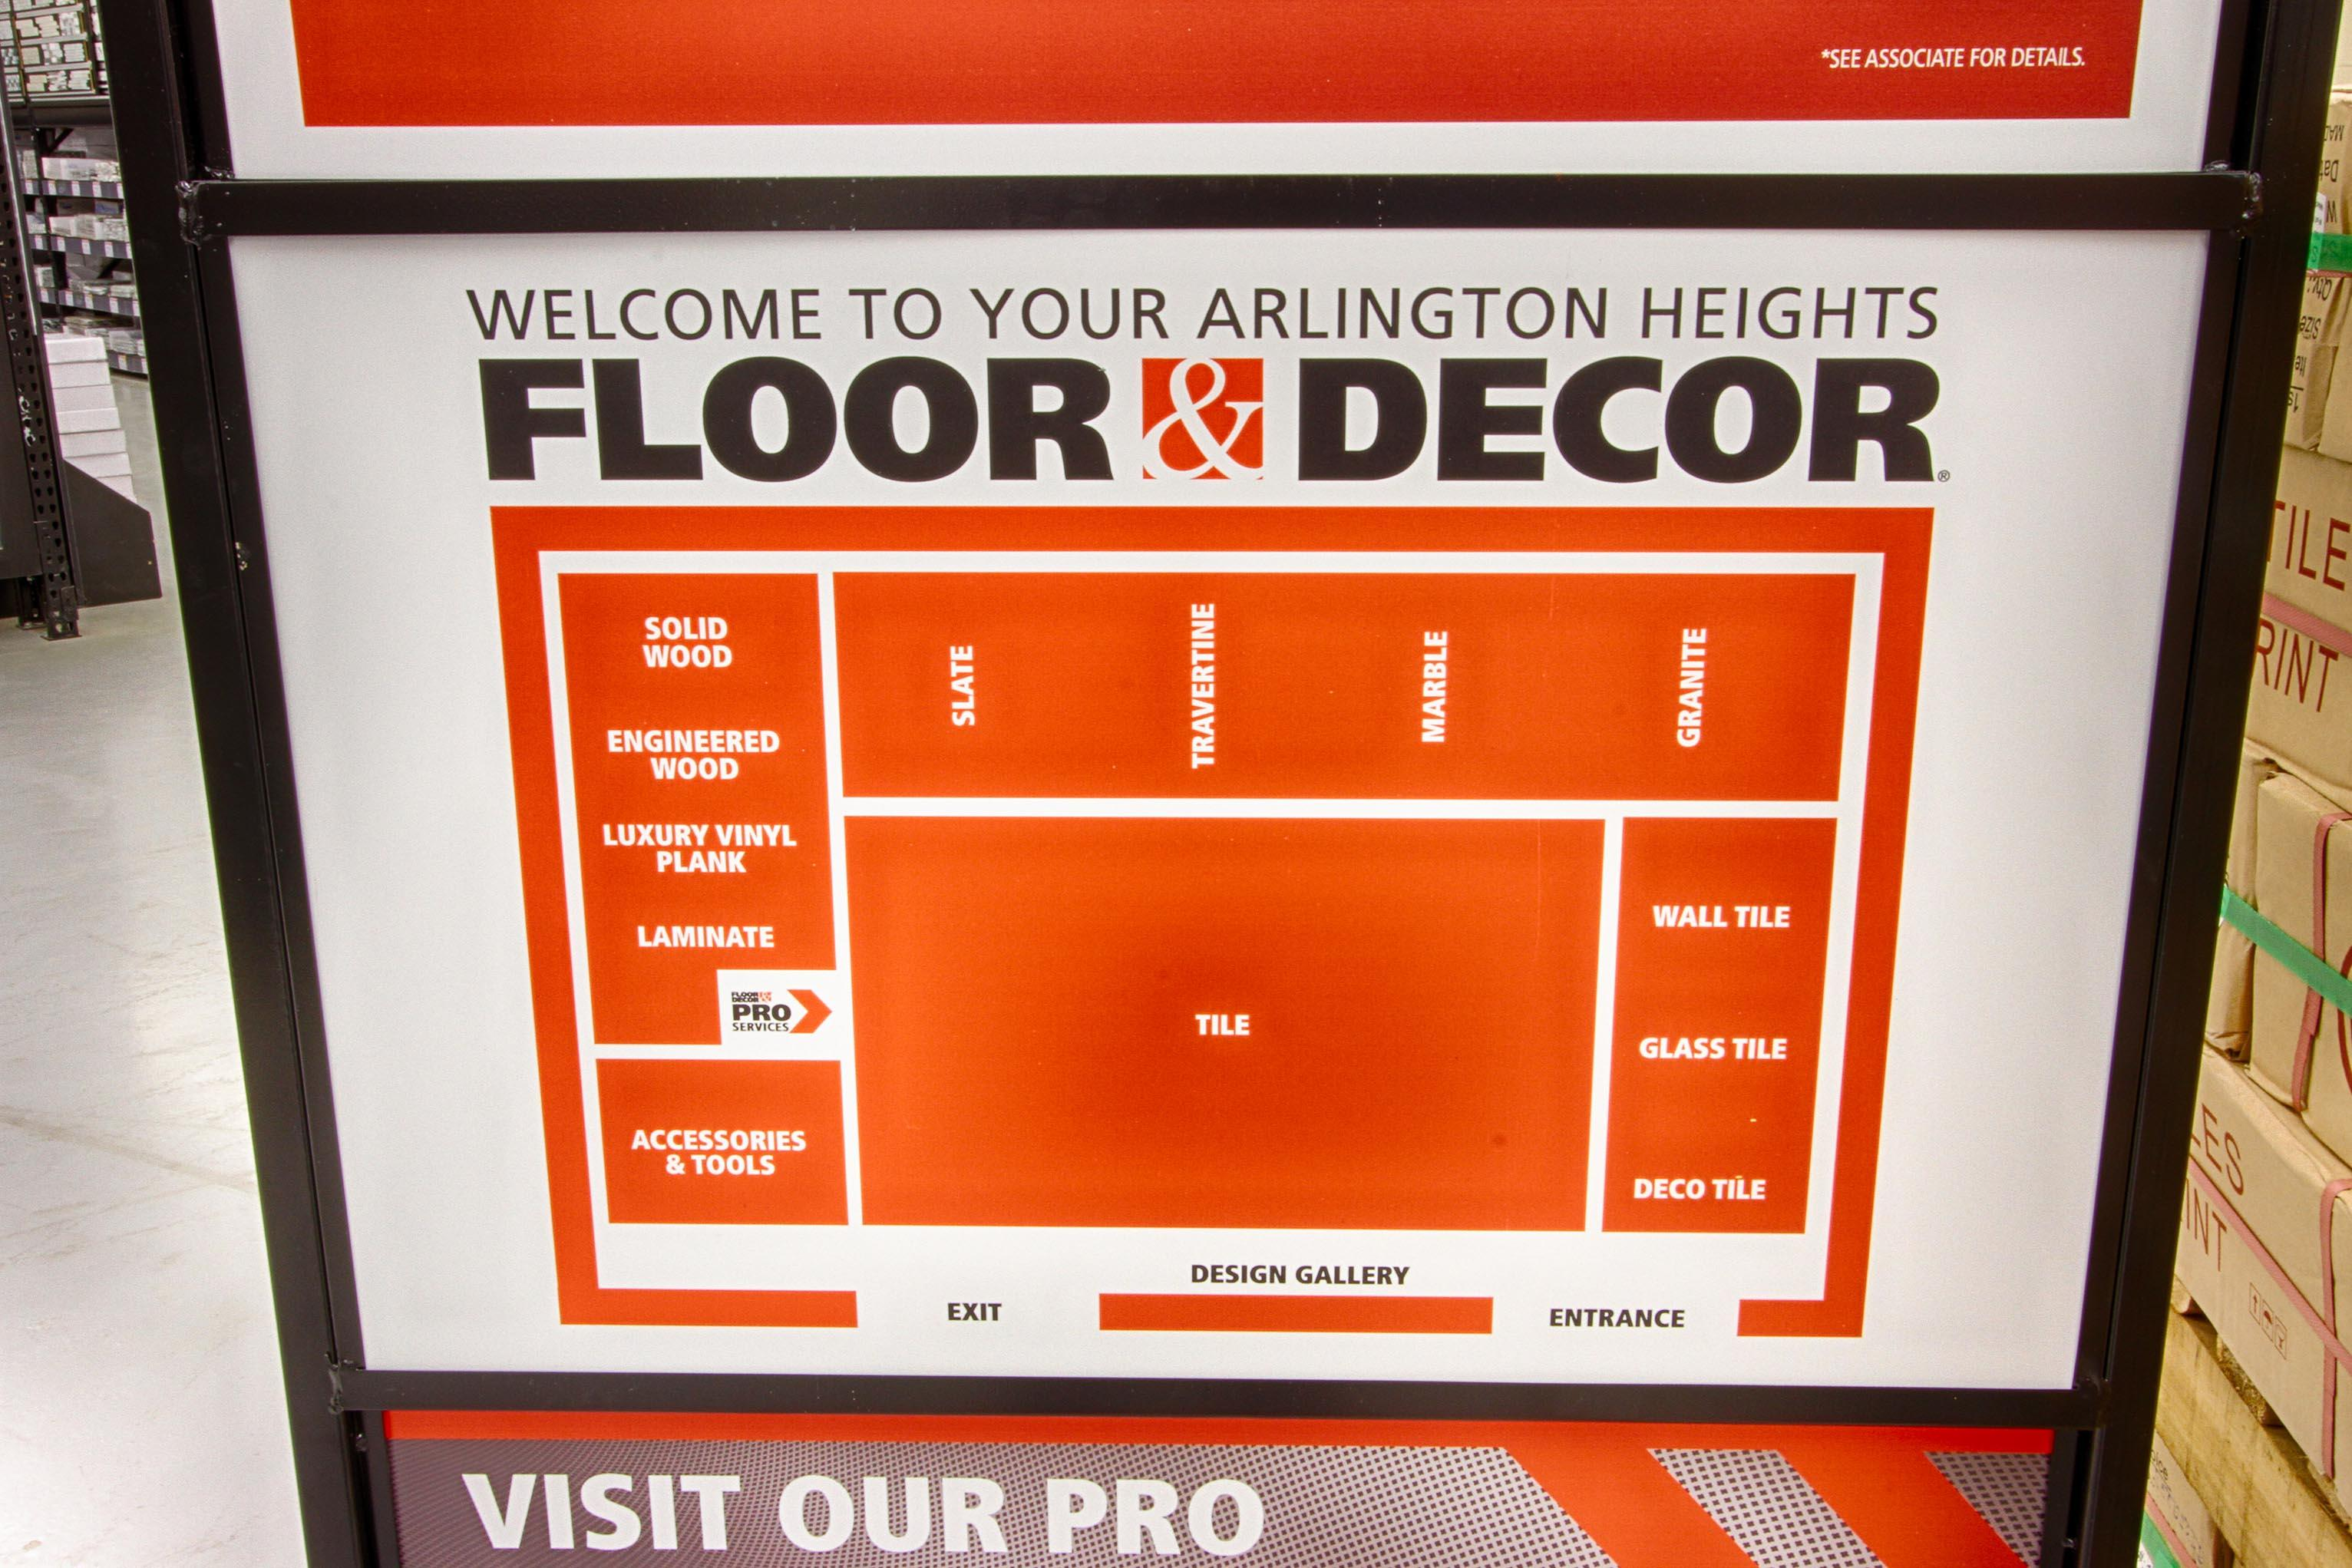 Floor Amp Decor Coupons Near Me In Arlington Heights Il